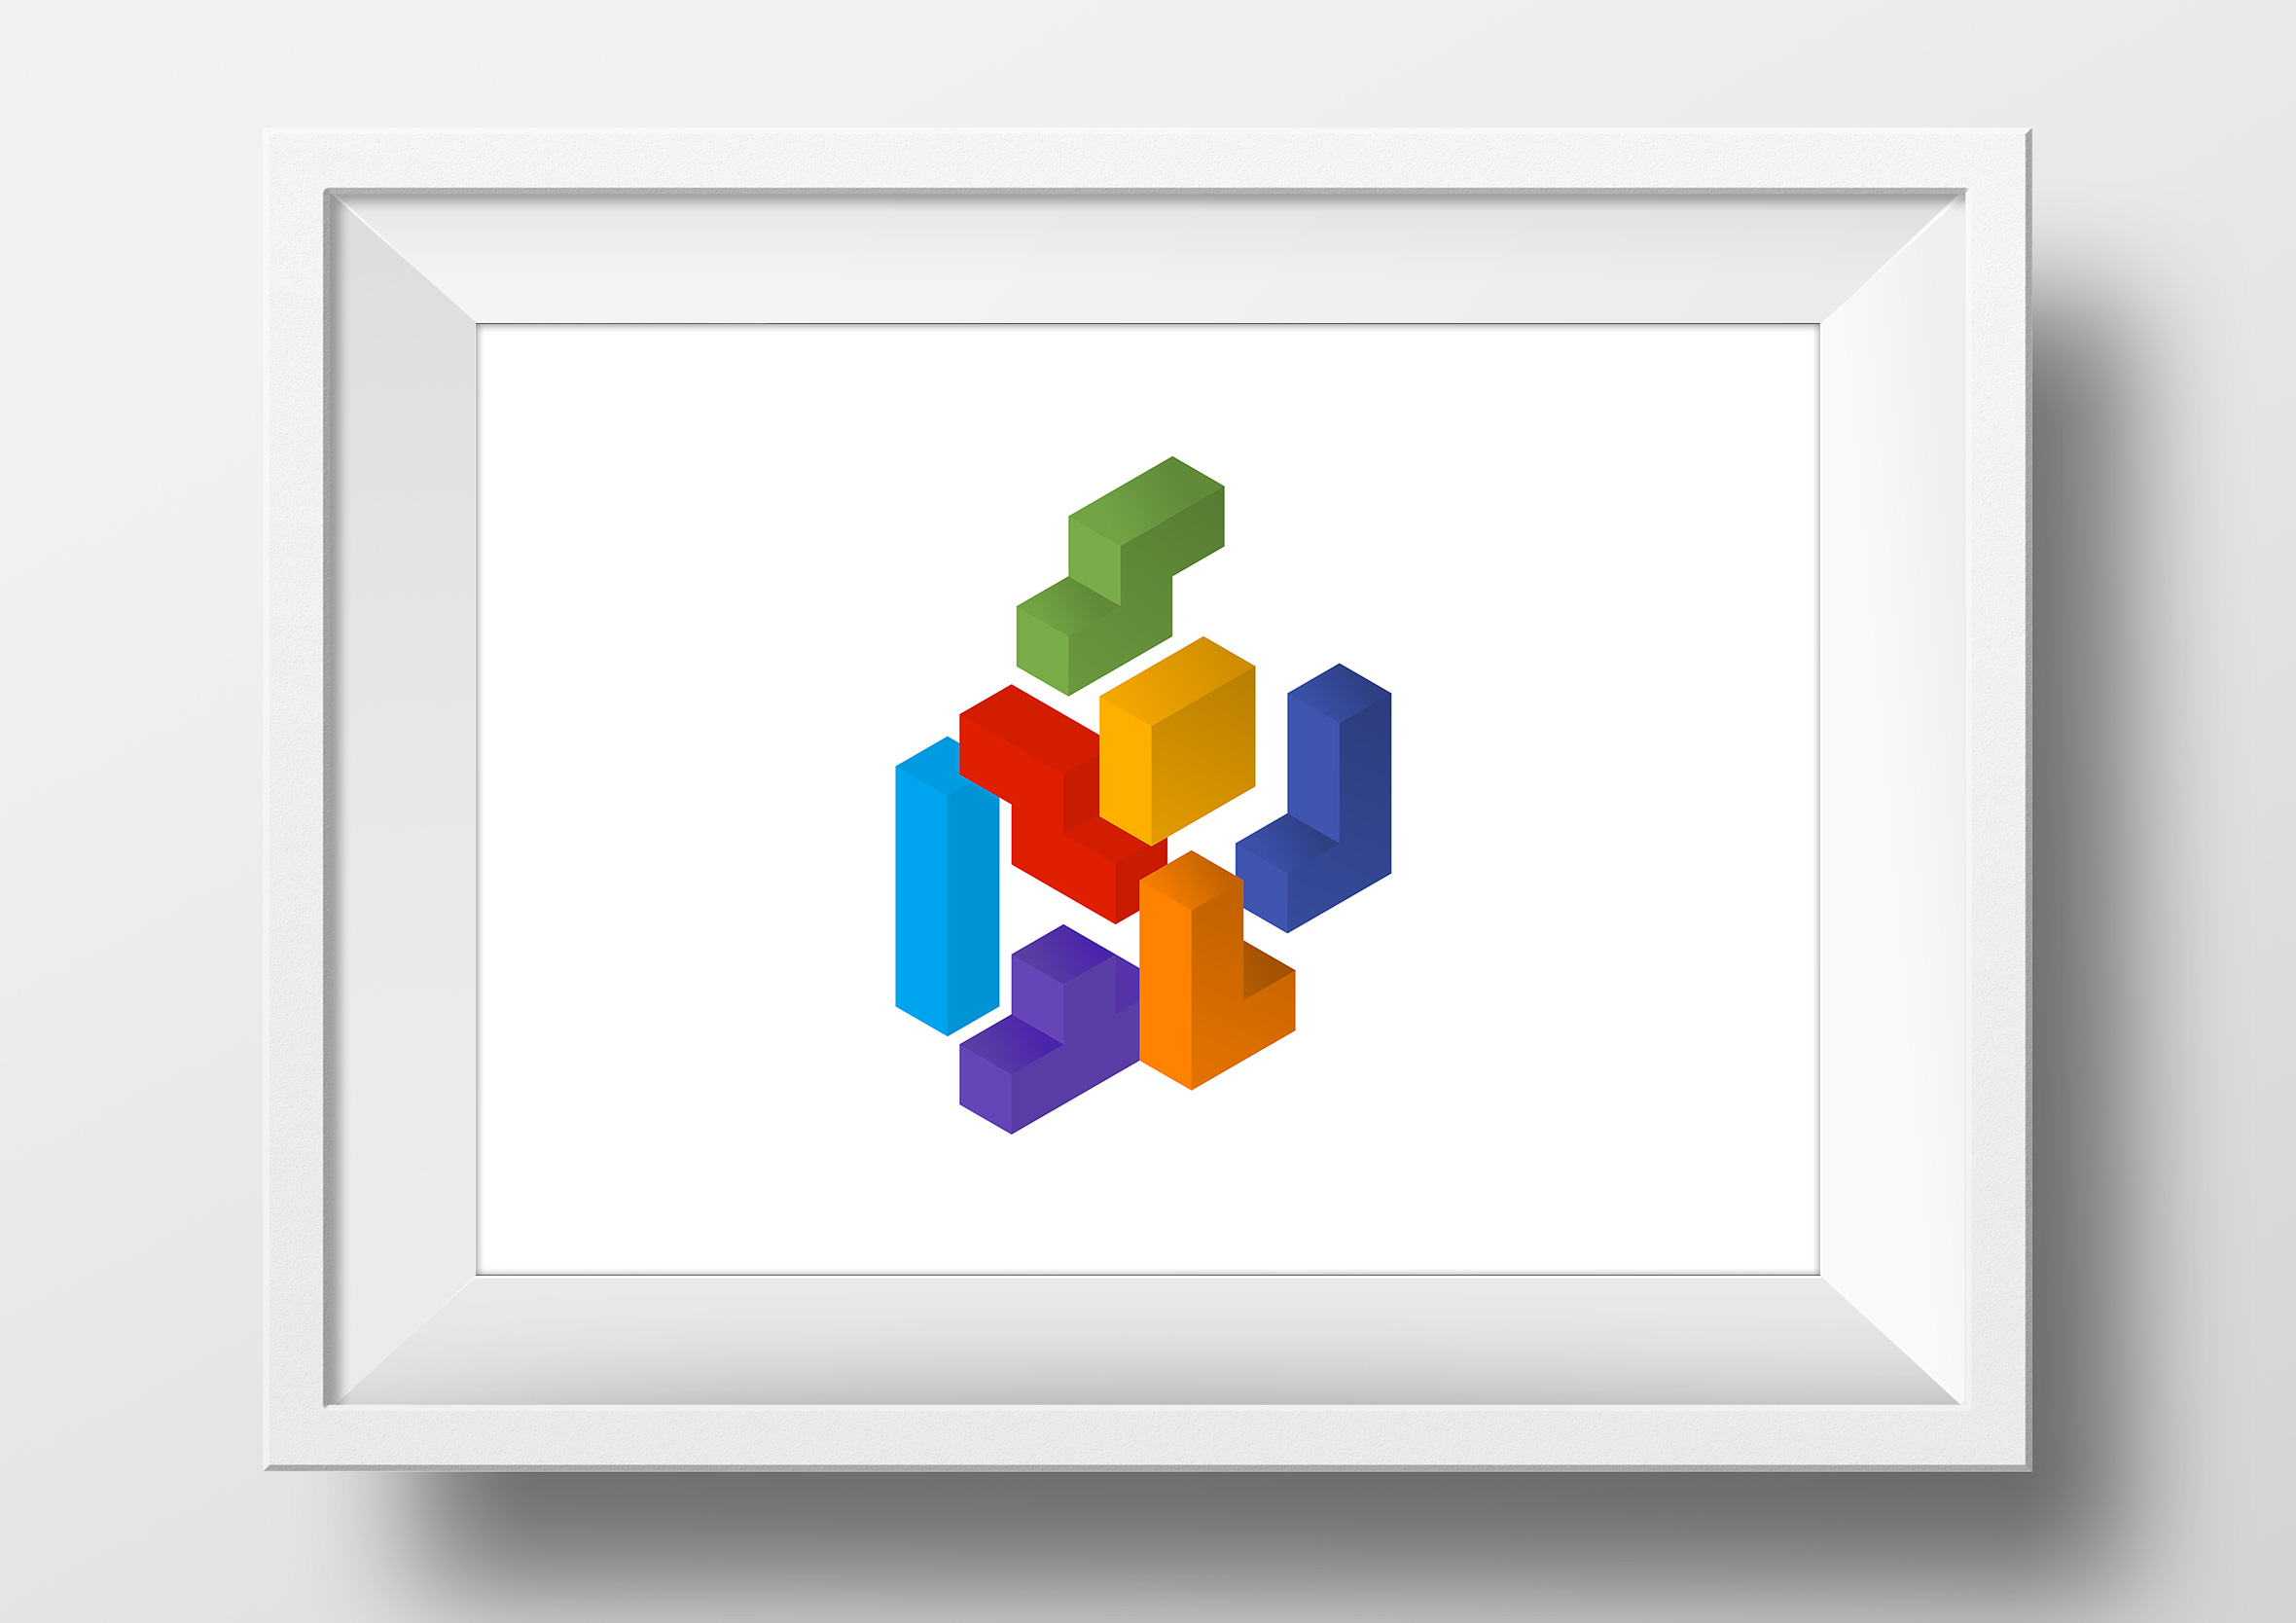 isometric-cubes-framed